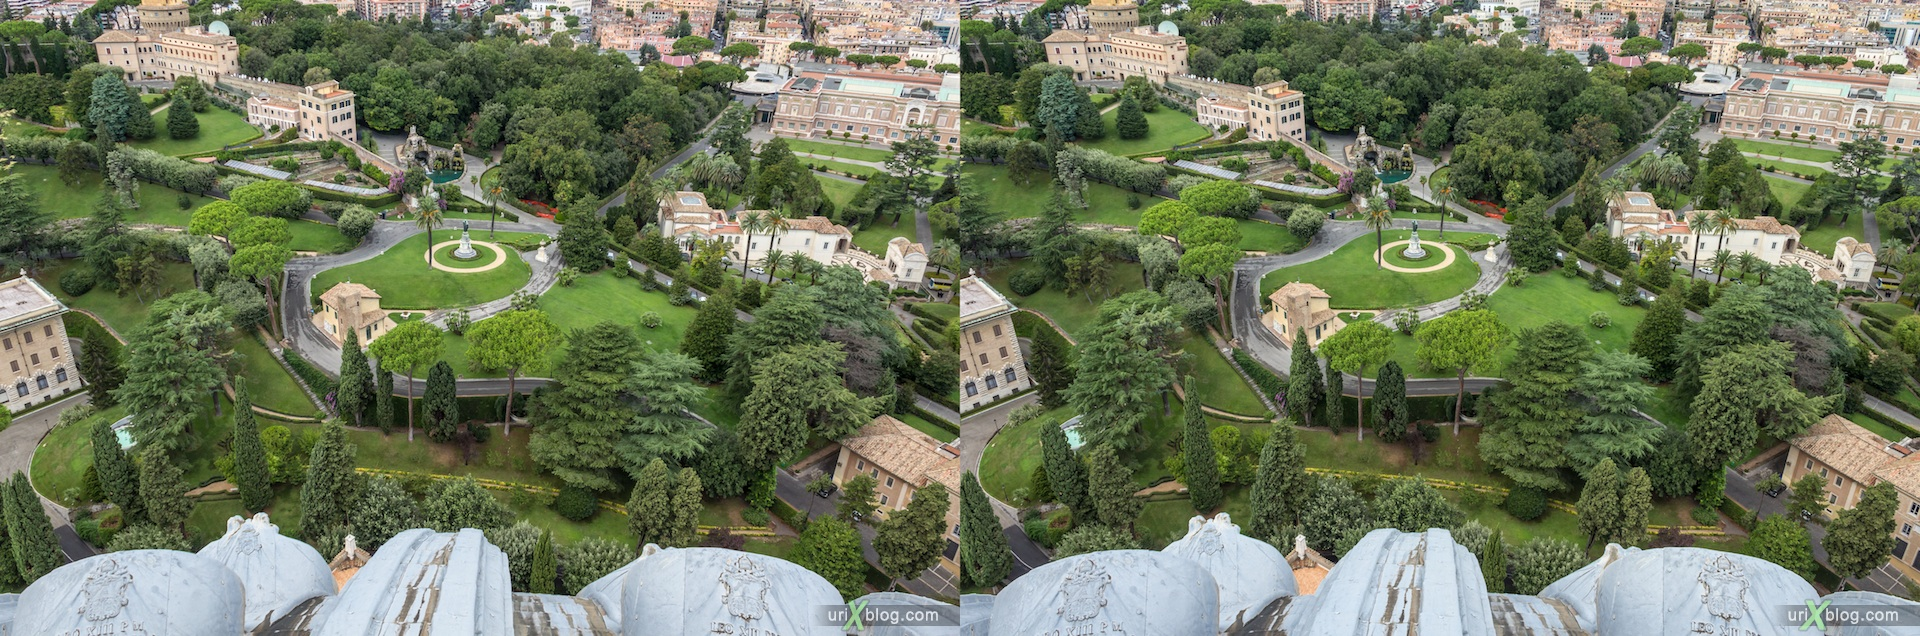 2012, Saint Peter's Basilica, Vatican, Rome, Italy, 3D, stereo pair, cross-eyed, crossview, cross view stereo pair